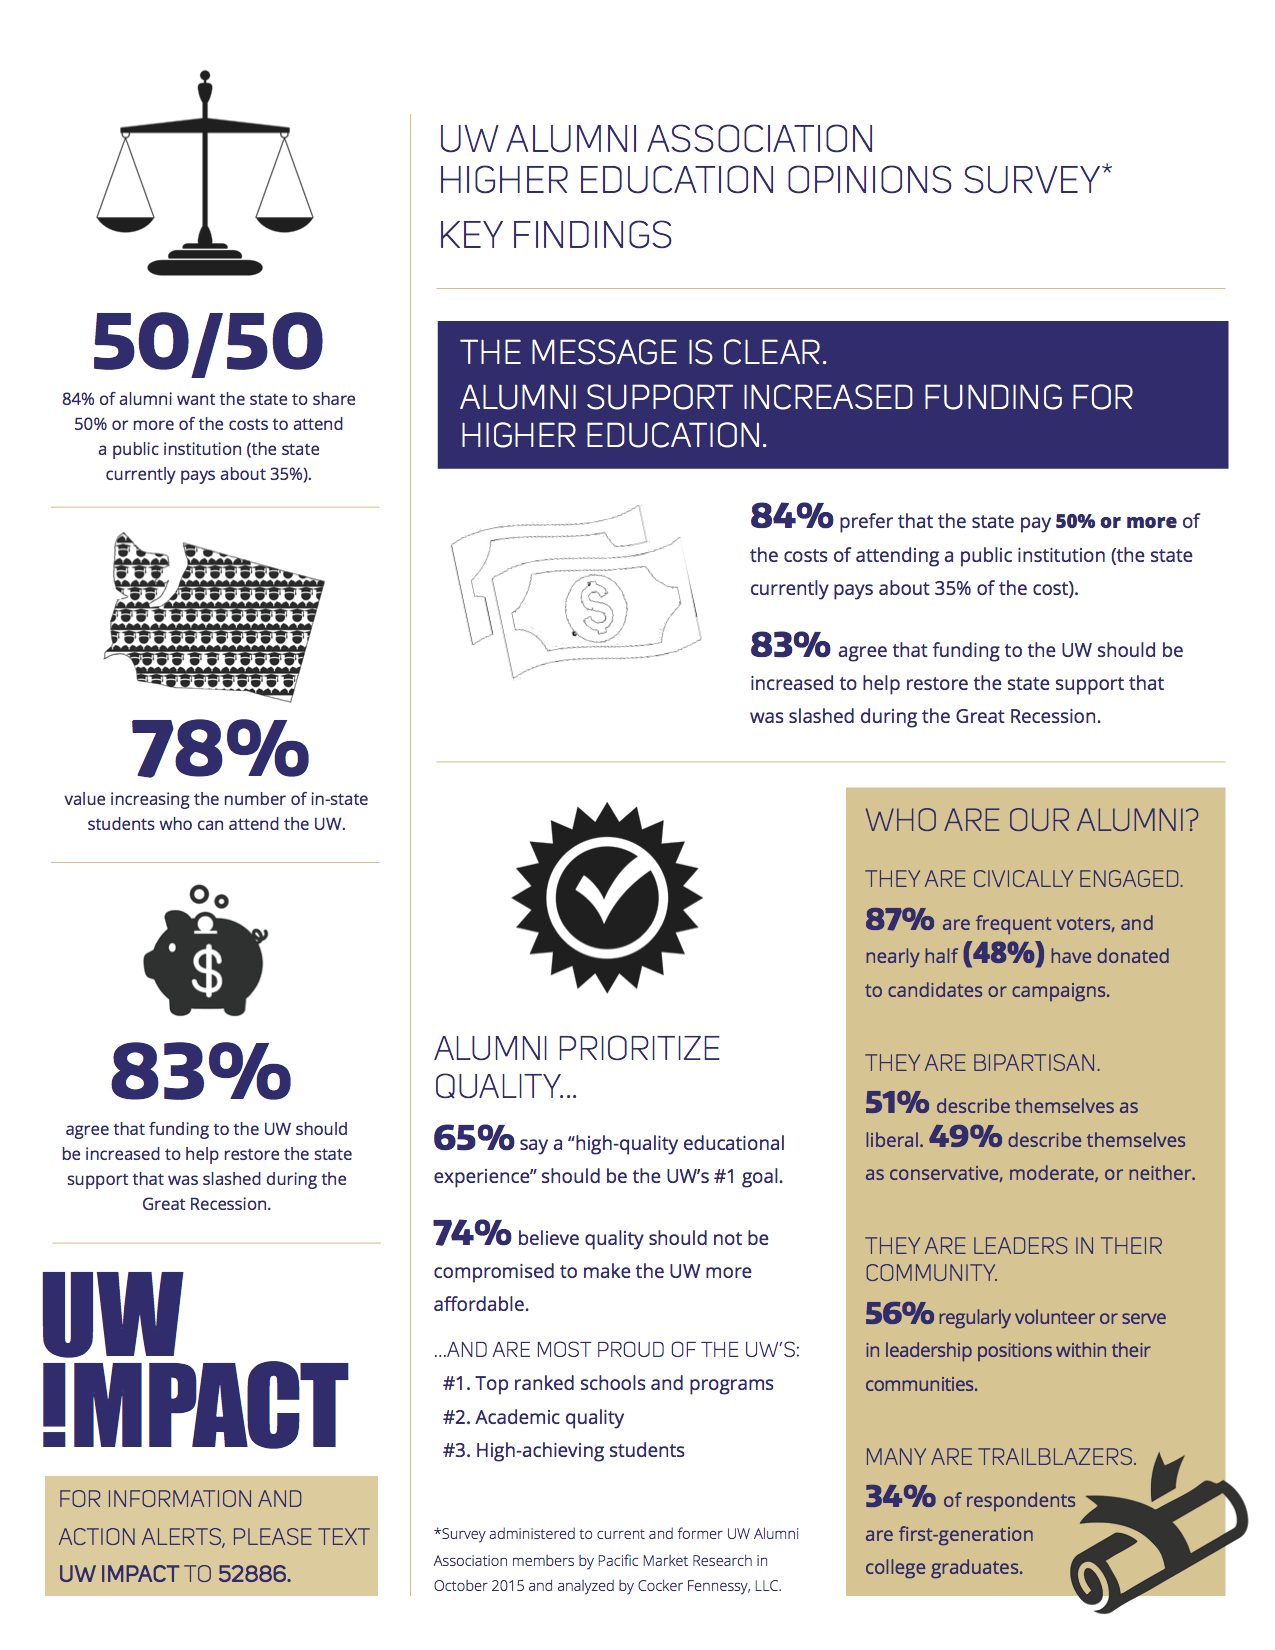 UW IMPACT KEY FINDINGS_0105